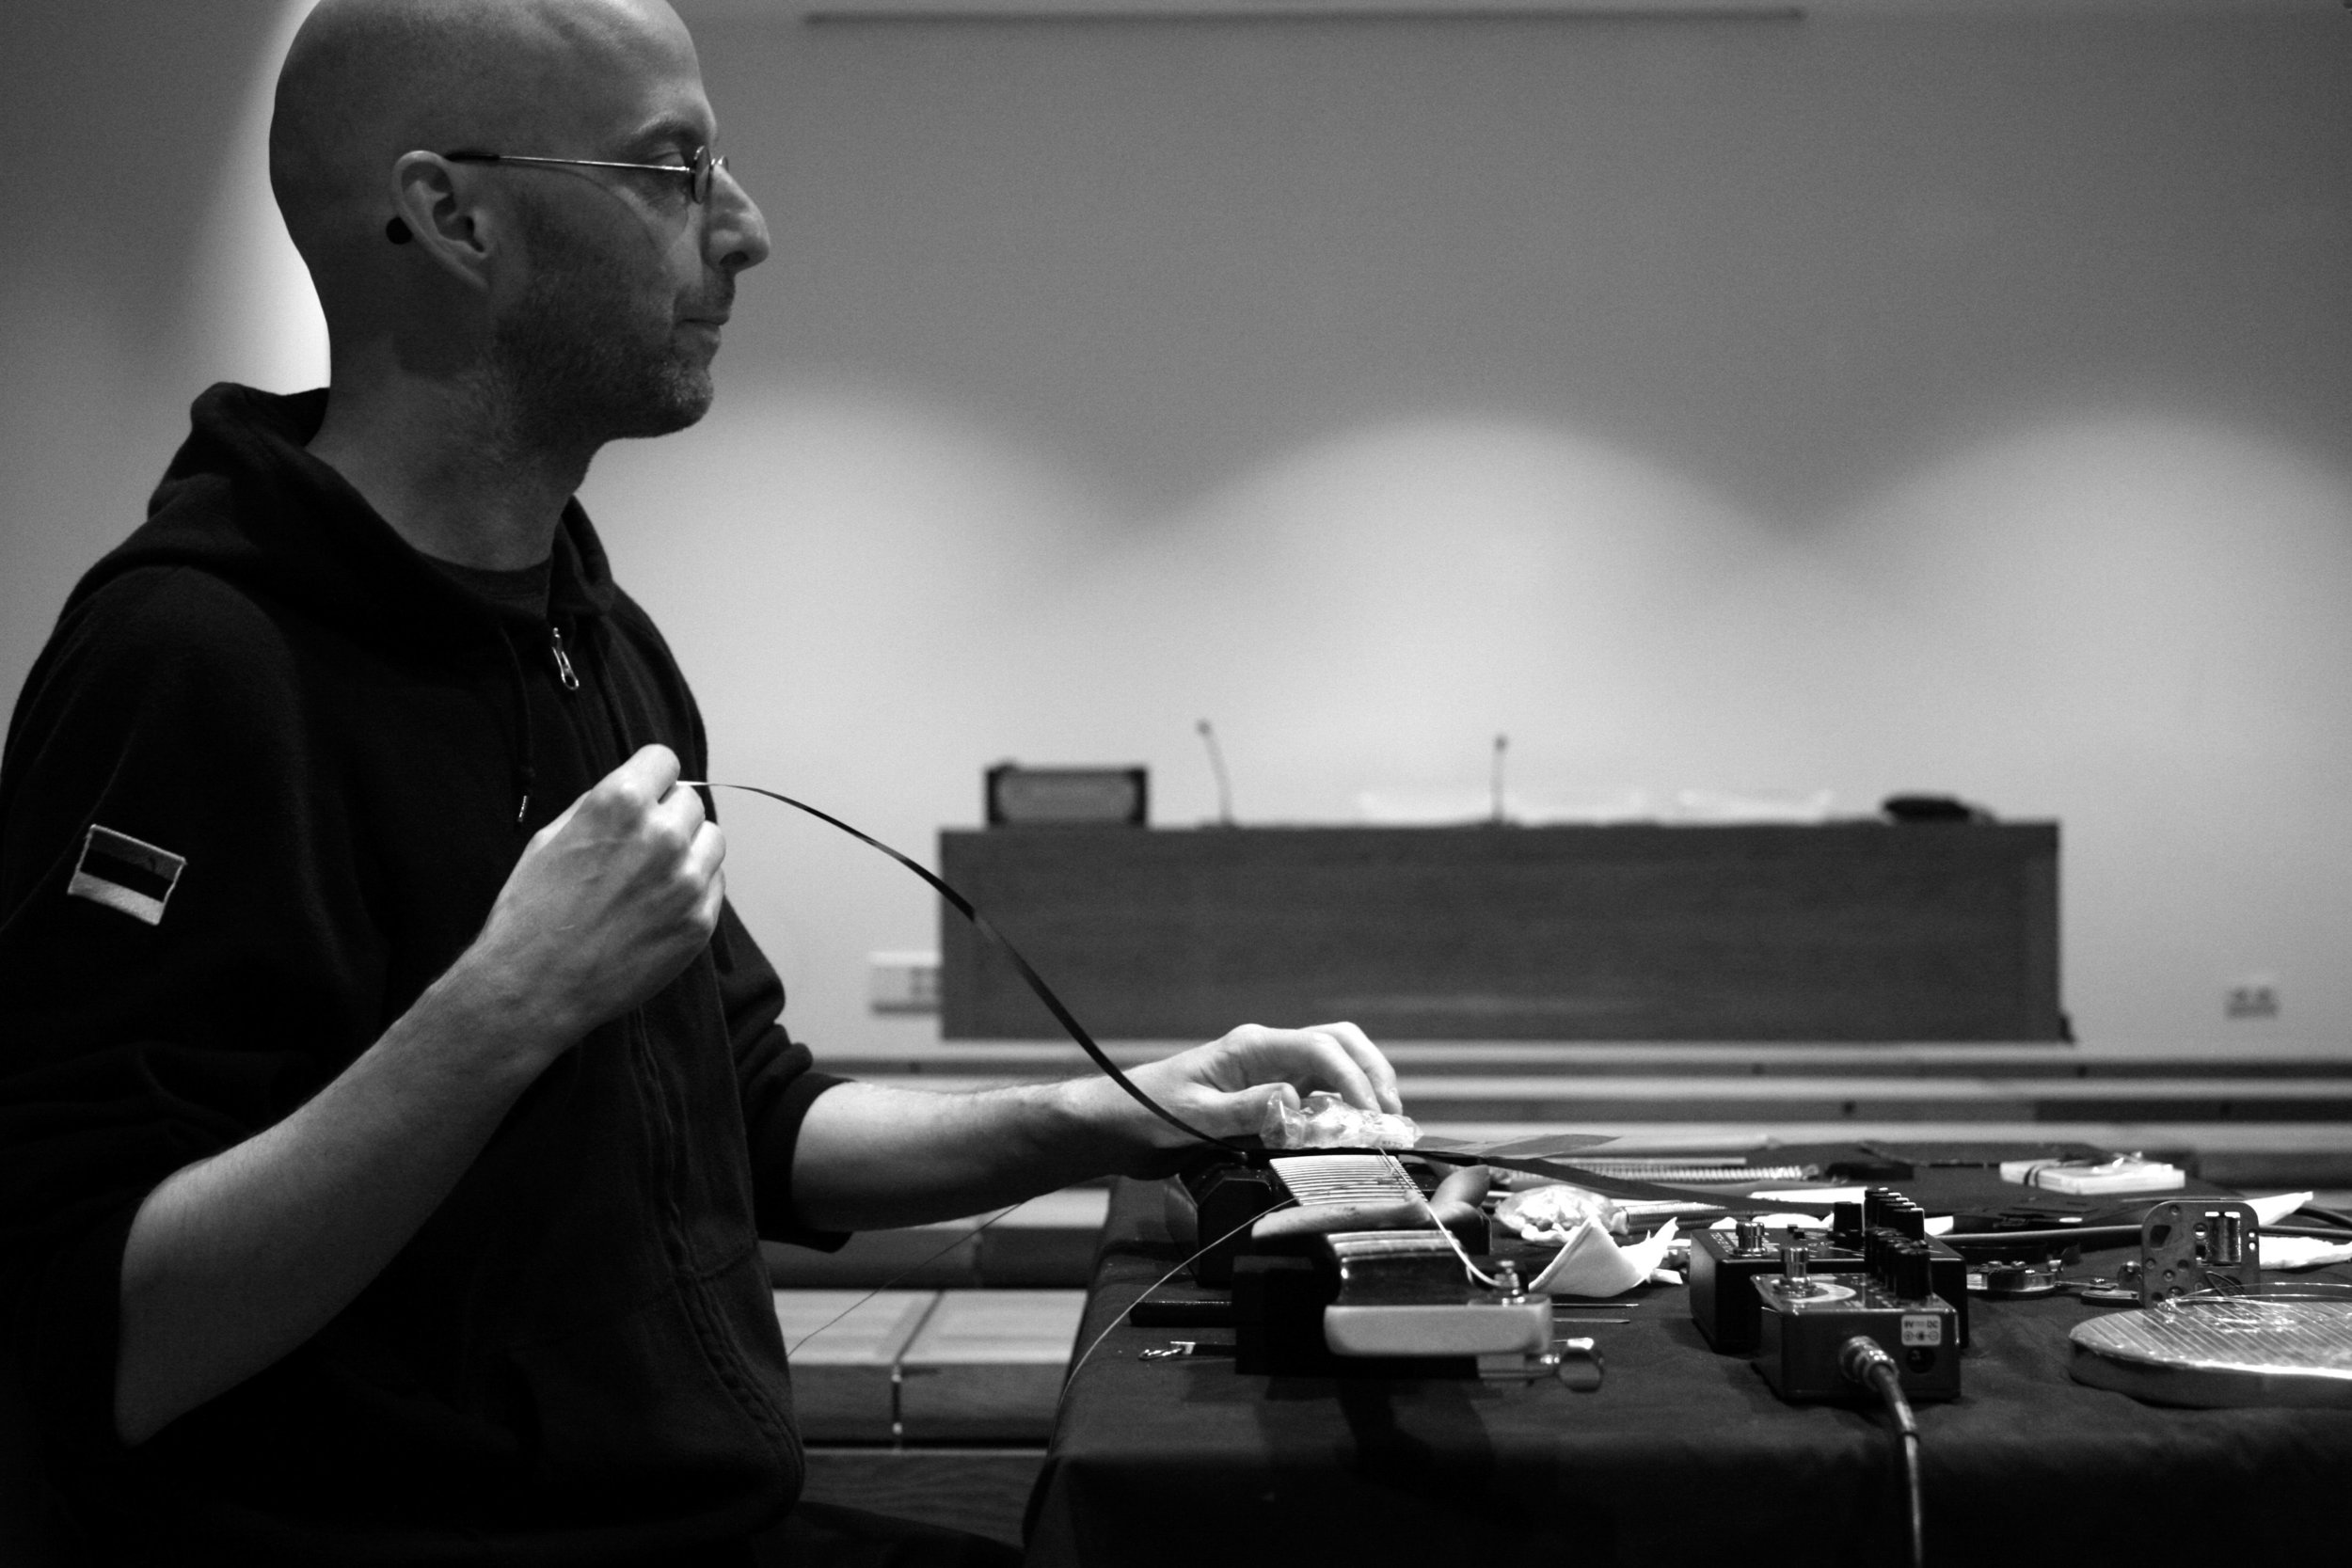 Tim Olive - (Kobe, JP) | Listen: Tim OliveThe music of Tim Olive arises from collaboration with fellow musicians/sound artists, collaboration with physical and temporal setting, and collaboration with those involved in the act of listening. Using simple materials (including magnetic pickups, steel strings, tuning forks, metal strips, hand-wound motor mechanisms, magnetic tape, dental floss and analog electronics), Olive's work is predicated on the interplay of the human with material/time/space, and the uniqueness, intensity and unrepeatability that lives in each performing and/or recording situation.He is interested in music as a social activity, as a way of creating community, a way of countering the forces which lead to an increasing atomization of contemporary life; music as a felt experience rather than as a concept or a theory.A Canadian residing in Kobe, Japan, Olive has released music on Japanese, European and North American labels, with Jeff Allport, Cristian Alvear, Pascal Battus, Alfredo Costa Monteiro, Samuel Dunscombe, Nick Hoffman, Anne-F Jacques, Jin Sangtae, Jason Kahn, Takahiro Kawaguchi, Yukinori Kikuchi, Francisco Meirino, Katsura Mouri, Takuji Naka, Bunsho Nishikawa, Makoto Oshiro, Ben Owen, Horacio Pollard and Fritz Welch.Olive has performed/recorded in Asia, Australia, Europe and North America, with the recording collaborators listed above, as well as with Tetuzi Akiyama, Maria Chavez, Che Chen, Kelly Churko, crys cole, Joe Foster, Haco, Hong Chulki, Bonnie Jones, Nicola Hein, Richard Kamerman, Kostis Kilymis, Siew-Wai Kok, Madoka Kouno, Tomasz Krakowiak, Fangyi Liu, Cal Lyall, Toshimaru Nakamura, James Rushford, Carl Stone, Nate Wooley, Jared Xu and Yan Jun.In addition to organizing events in Japan, Olive runs the label 845 Audio.